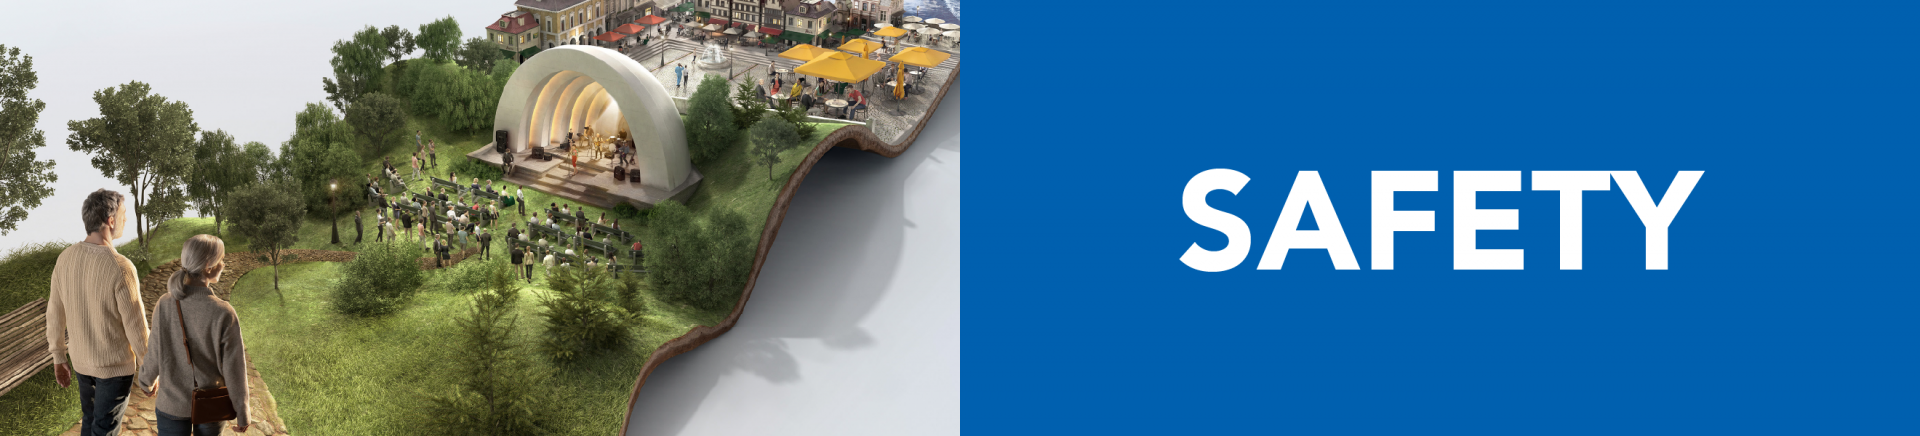 Top banner. Safety